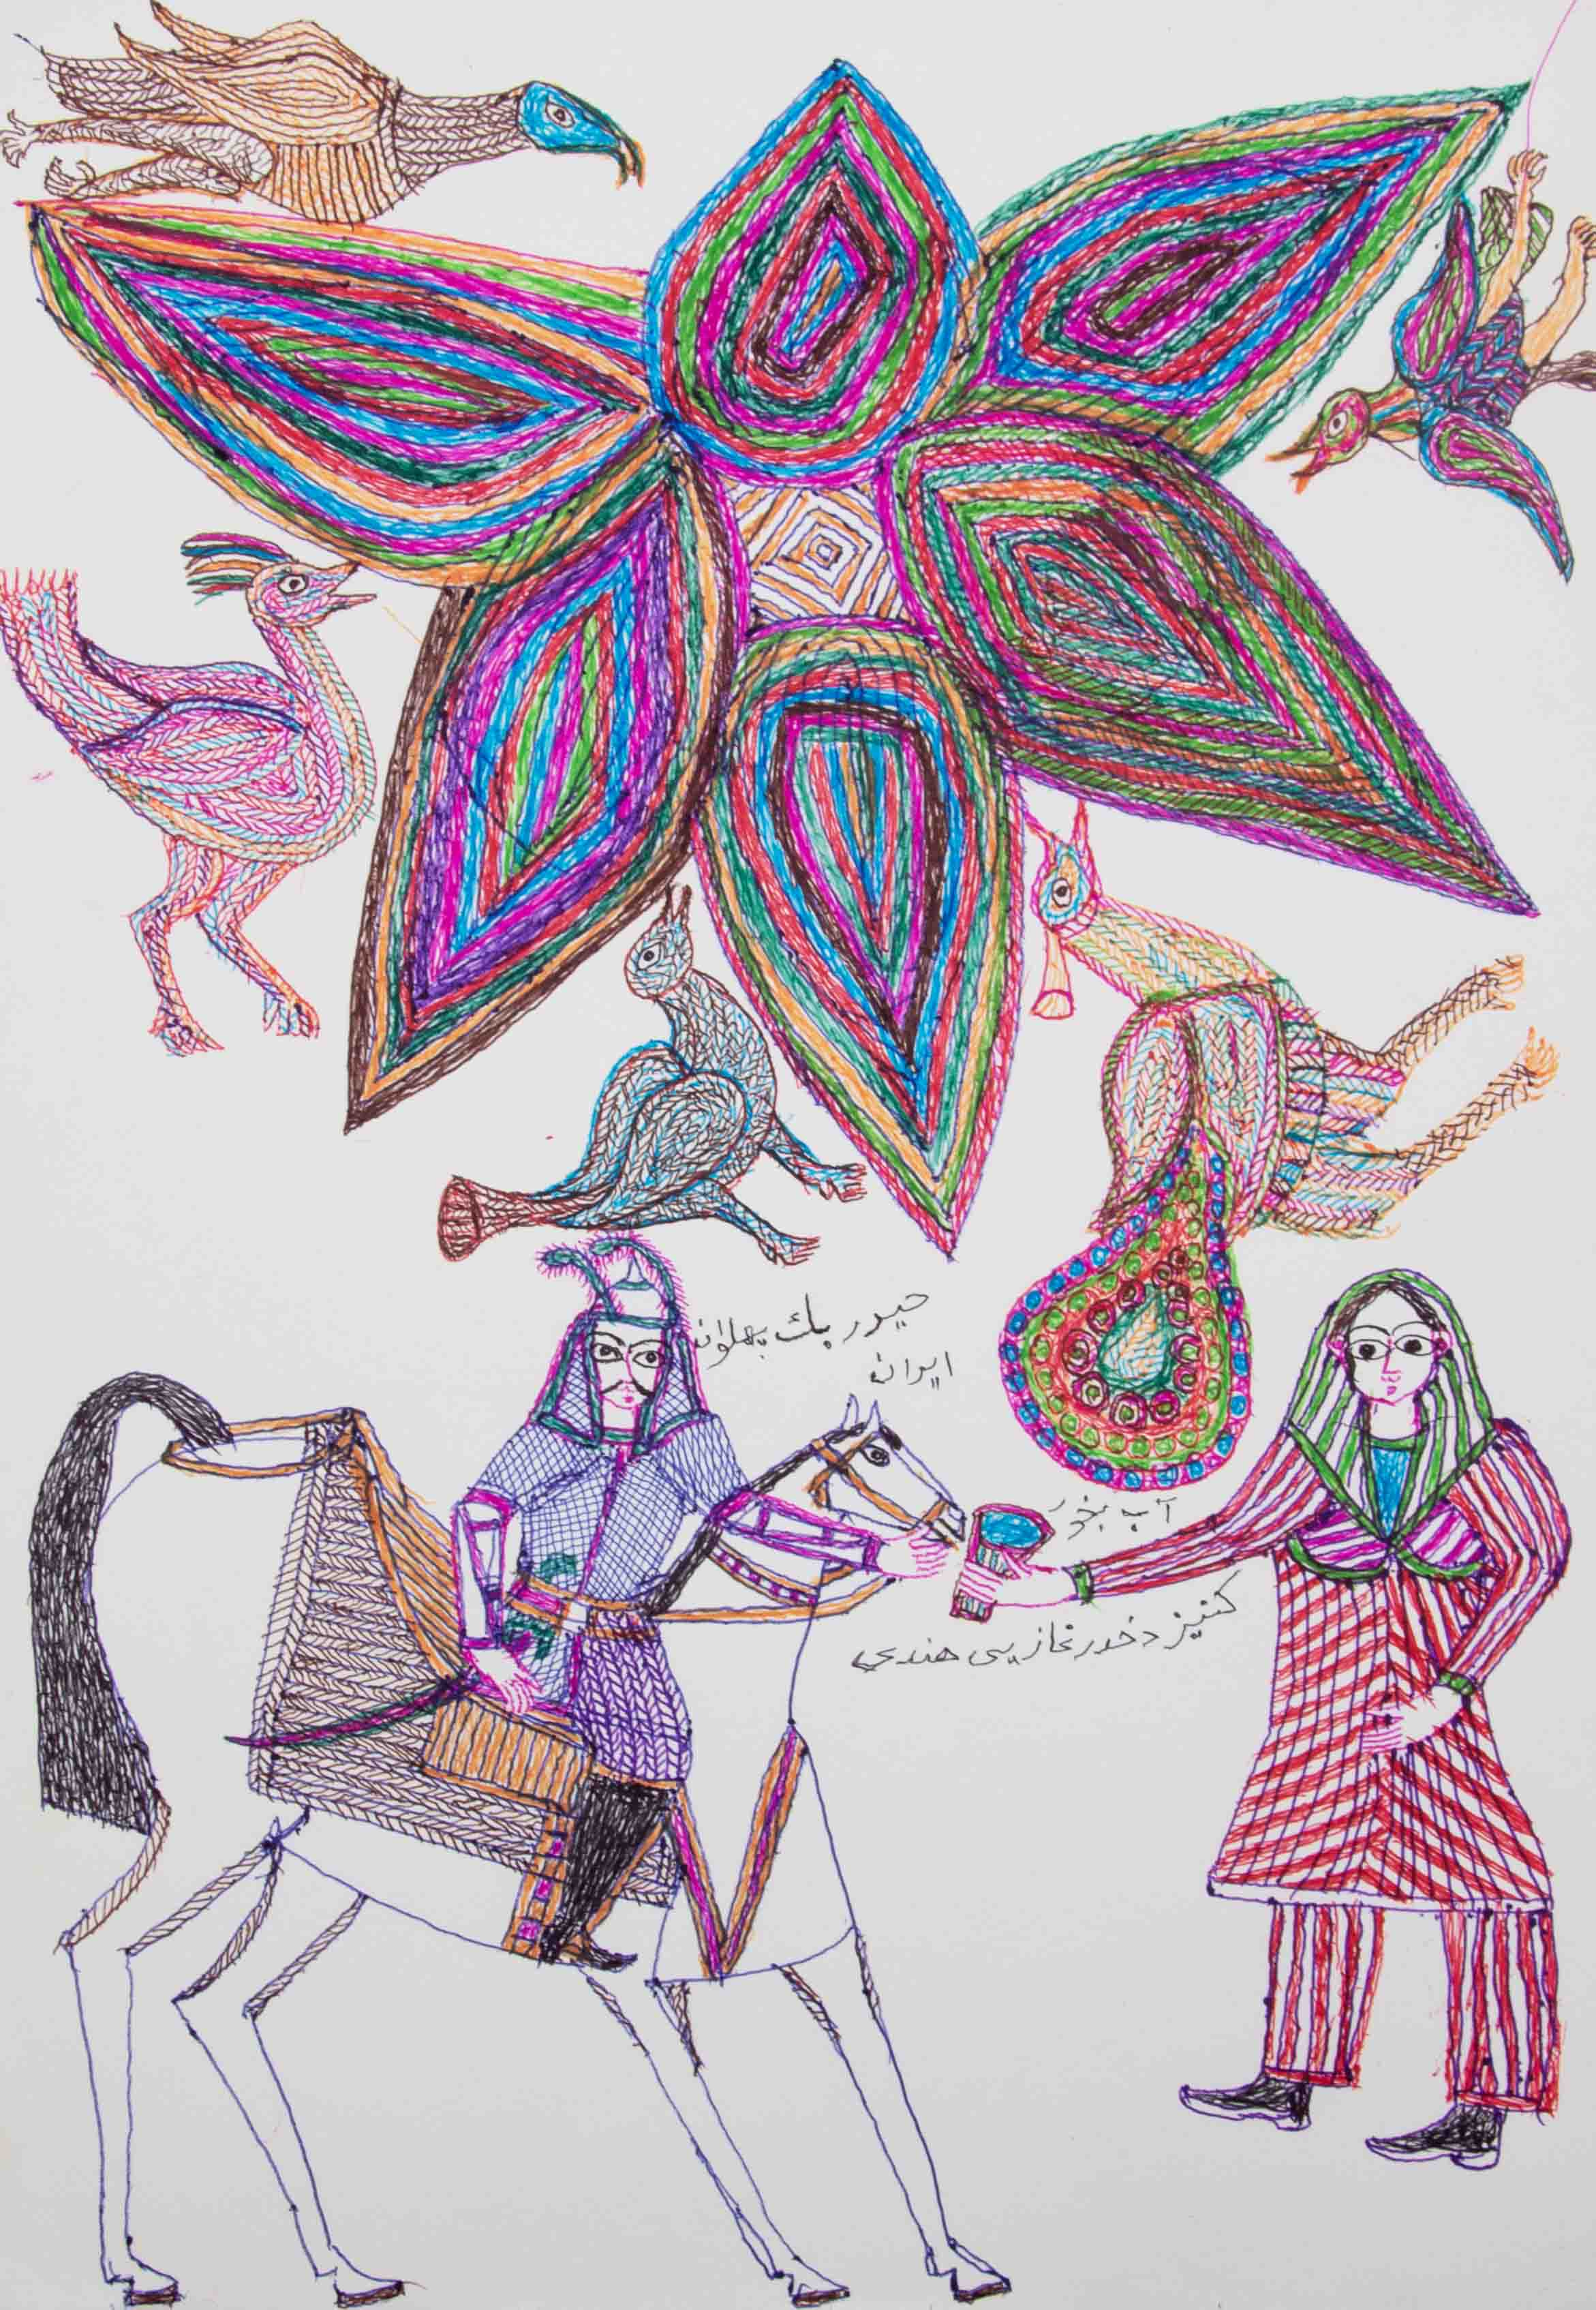 Heydarbag & Sanambar, 2015, Pen & rapid on paper, 30 x 40 cm